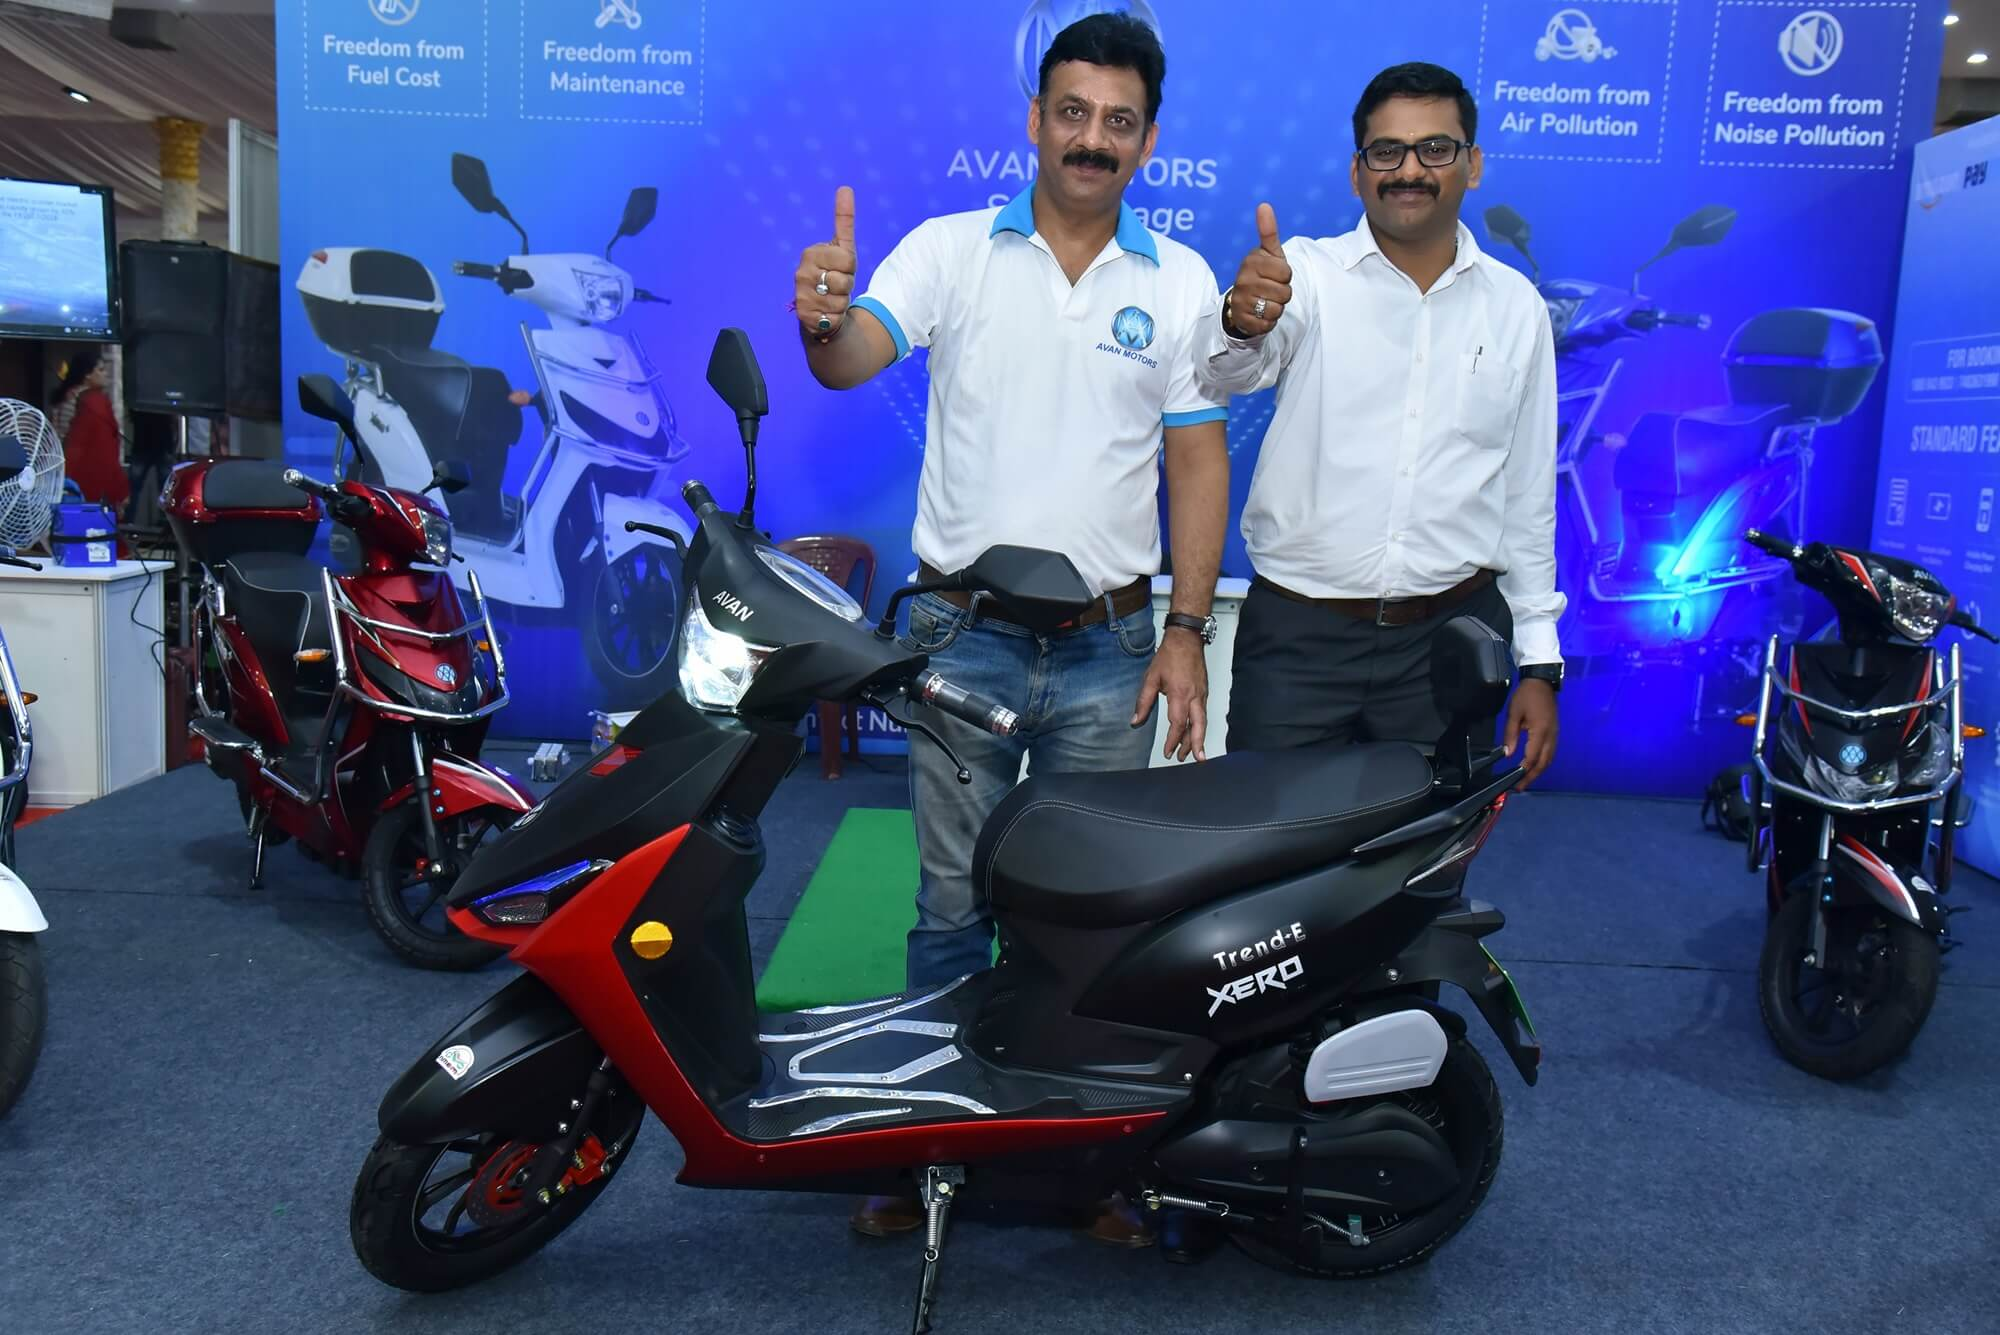 Avan Motors Trend E electric scooter unveiled